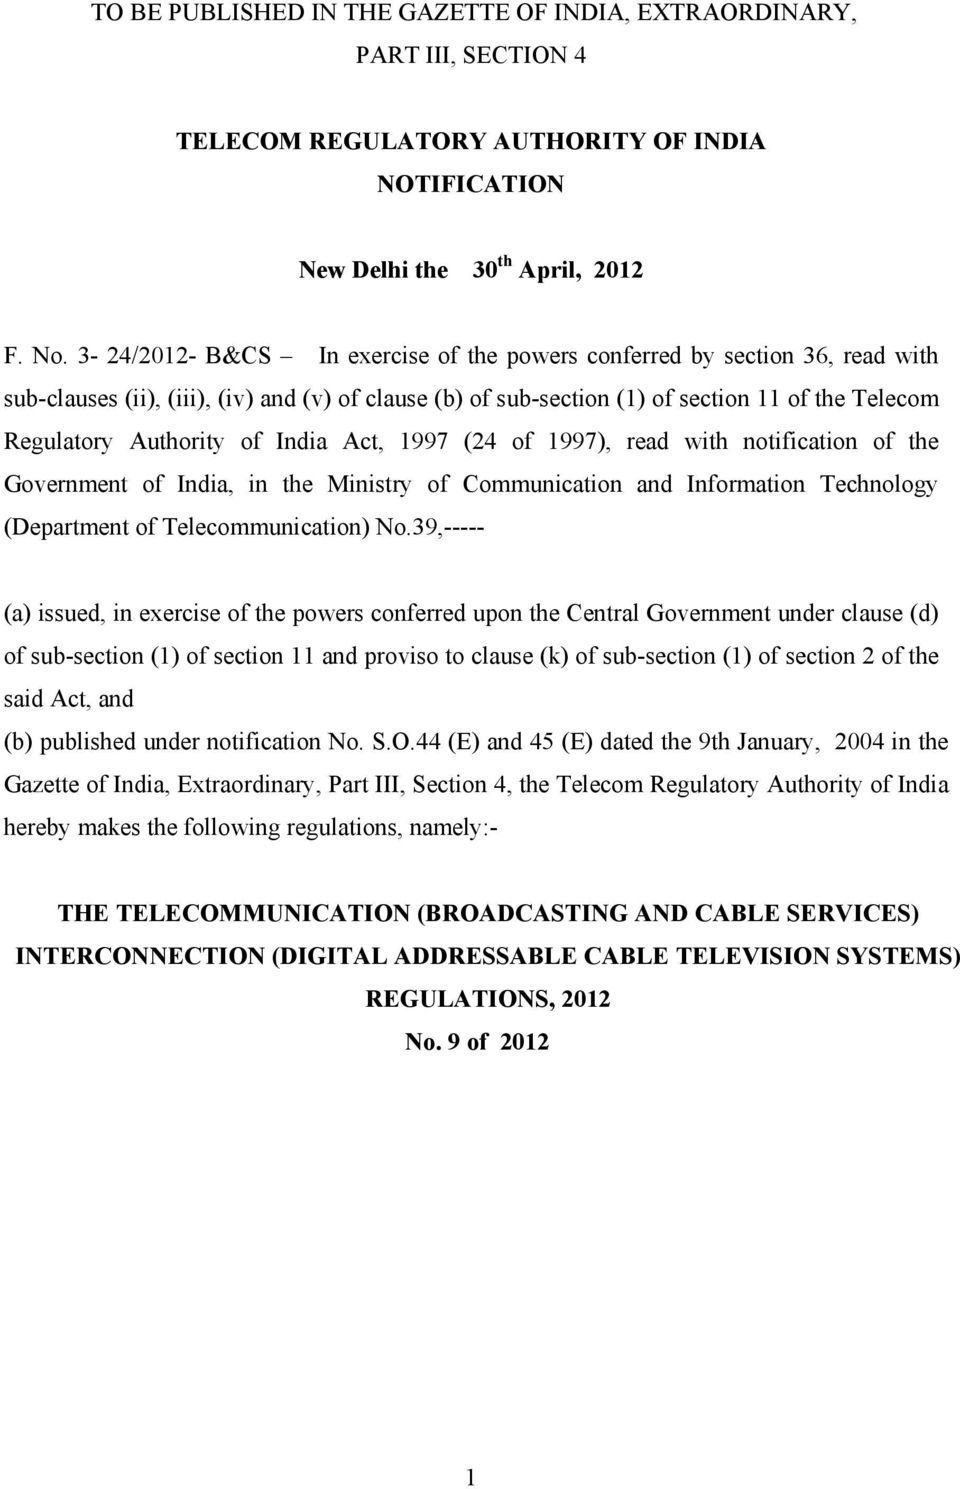 of India Act, 1997 (24 of 1997), read with notification of the Government of India, in the Ministry of Communication and Information Technology (Department of Telecommunication) No.